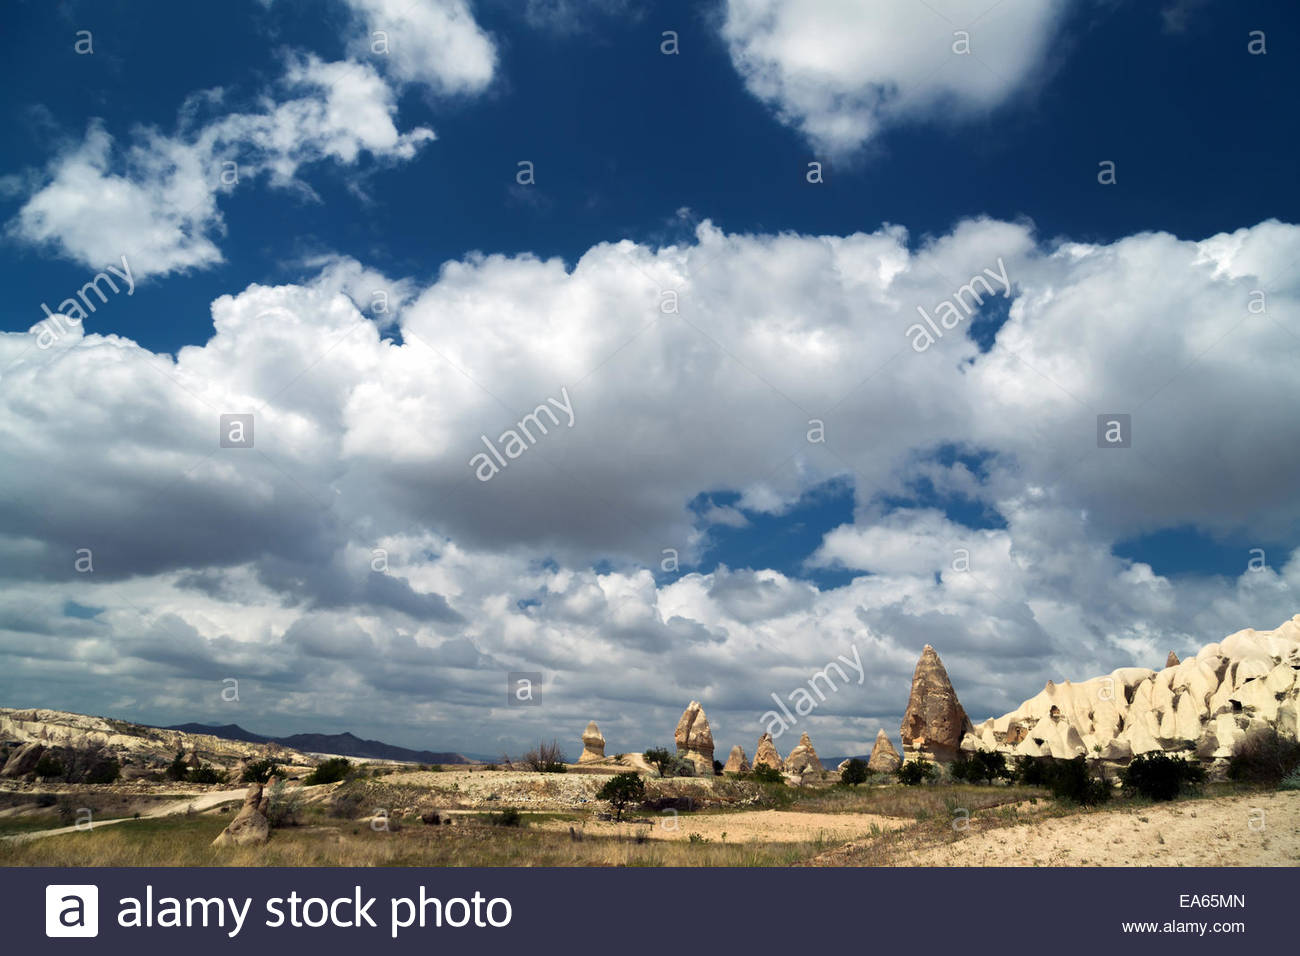 Goreme Open Air Museum, Turkey - Stock Image